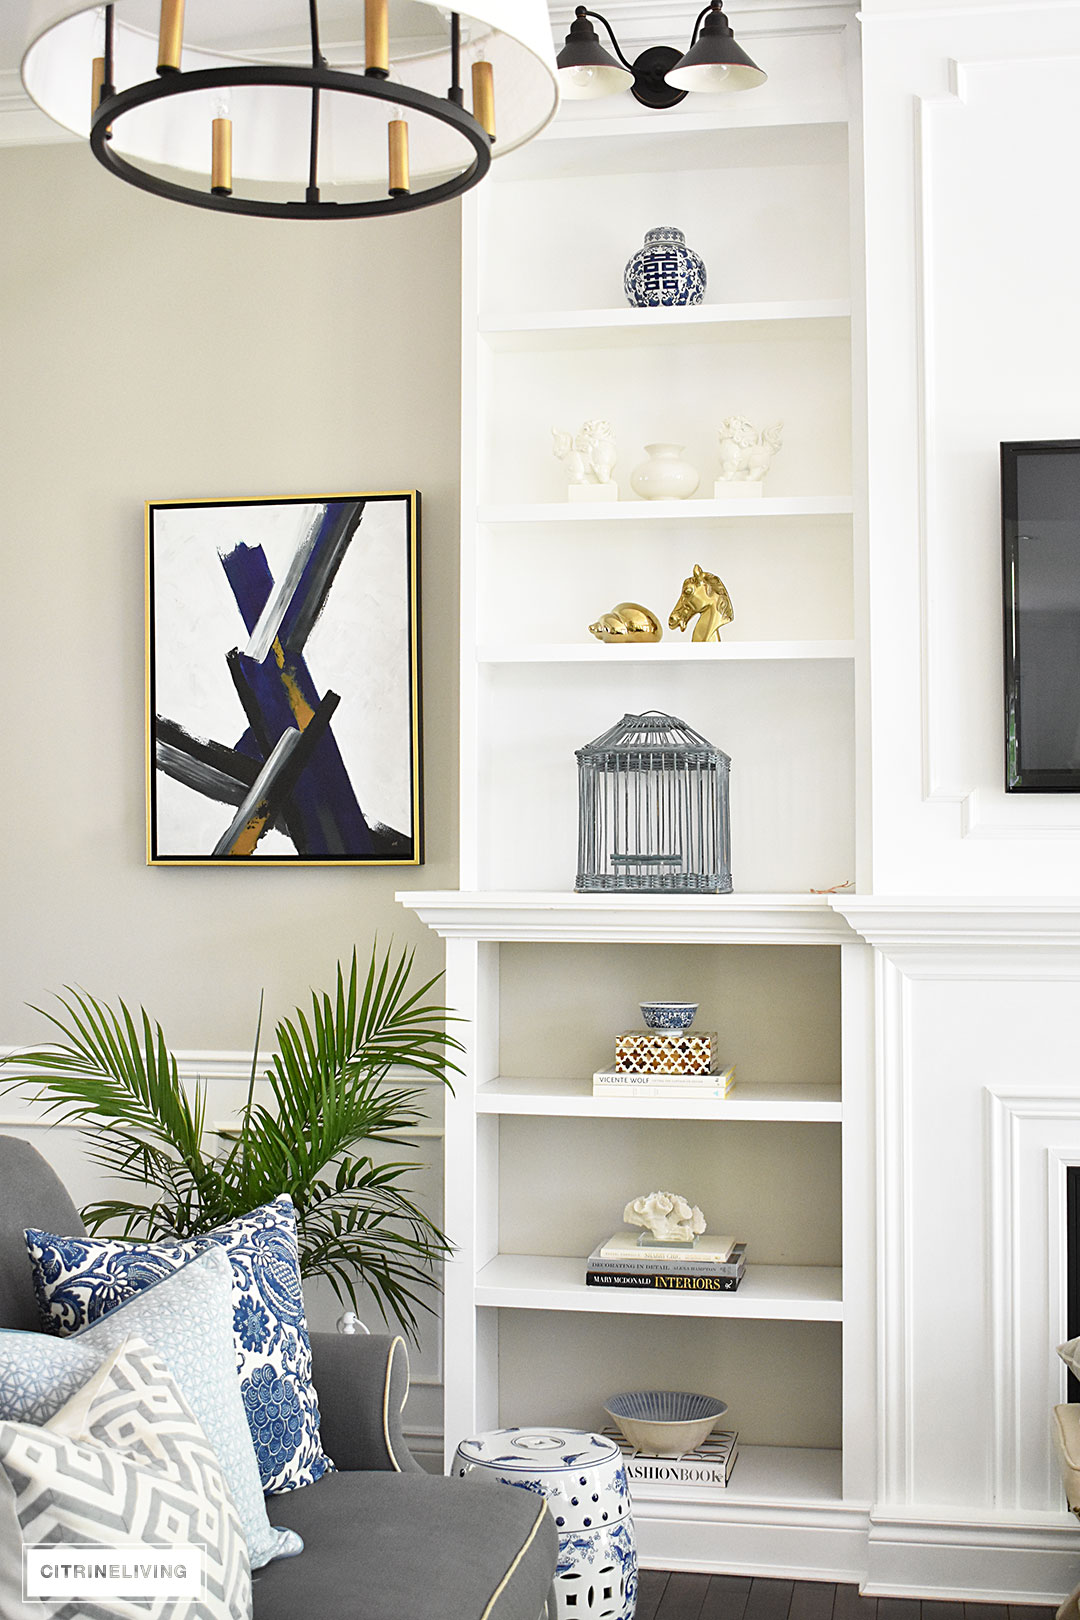 Summer decorated living with layers of beautiful blue patterned pillows accented with fresh palms. Custom built bookshelves hold blue and white pieces mixed wit coastal accessories, brass accents and design books.